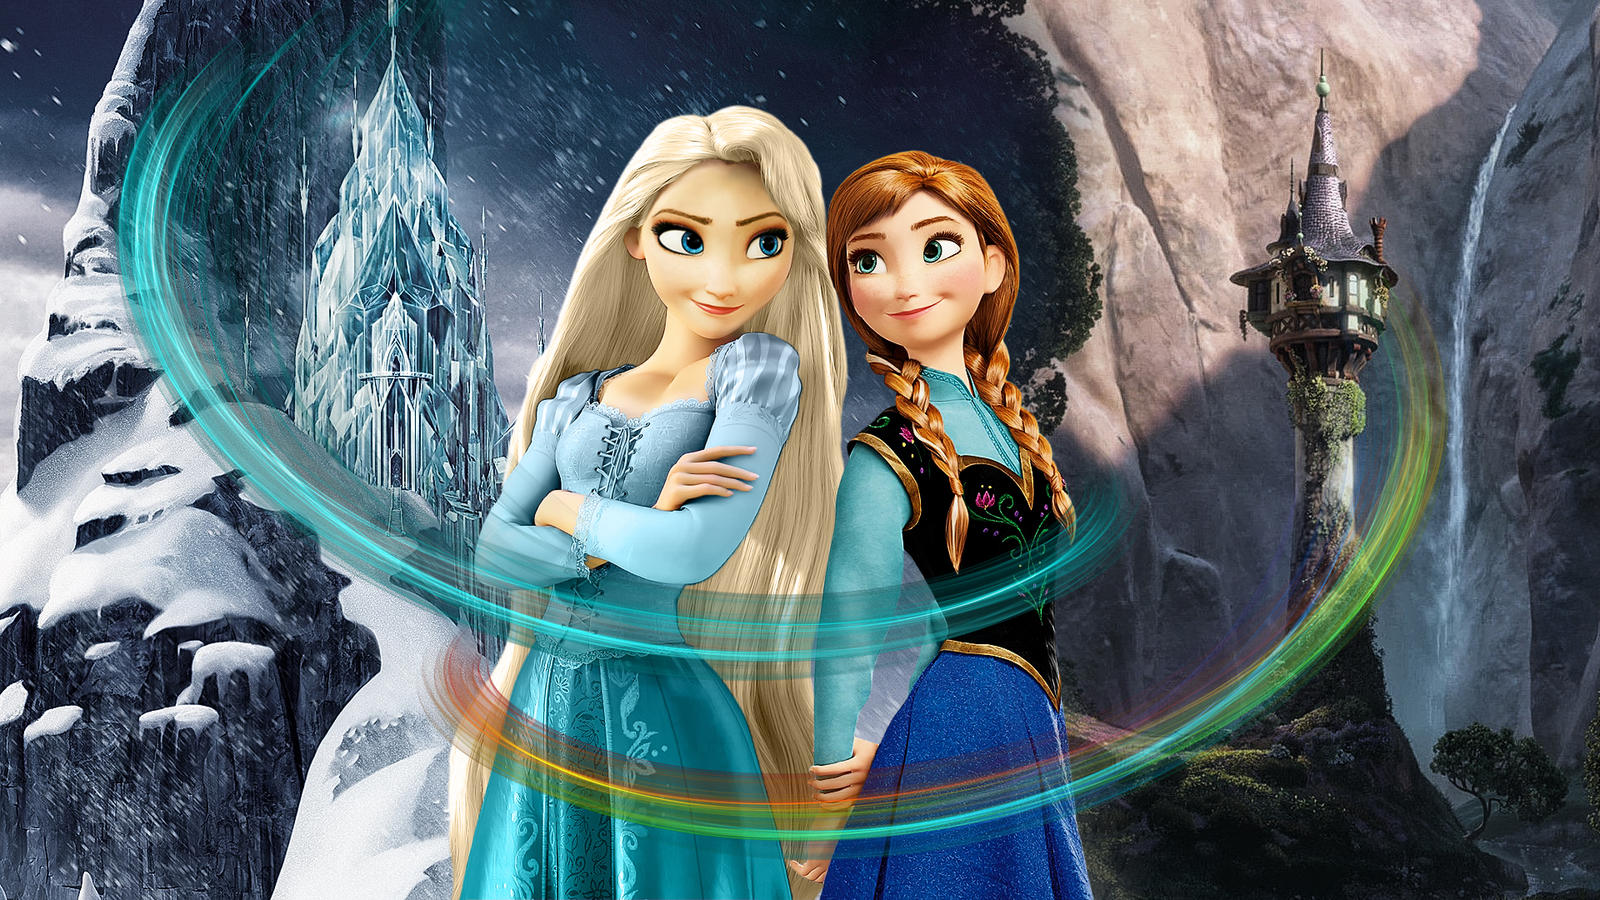 Frozen and tangled combined